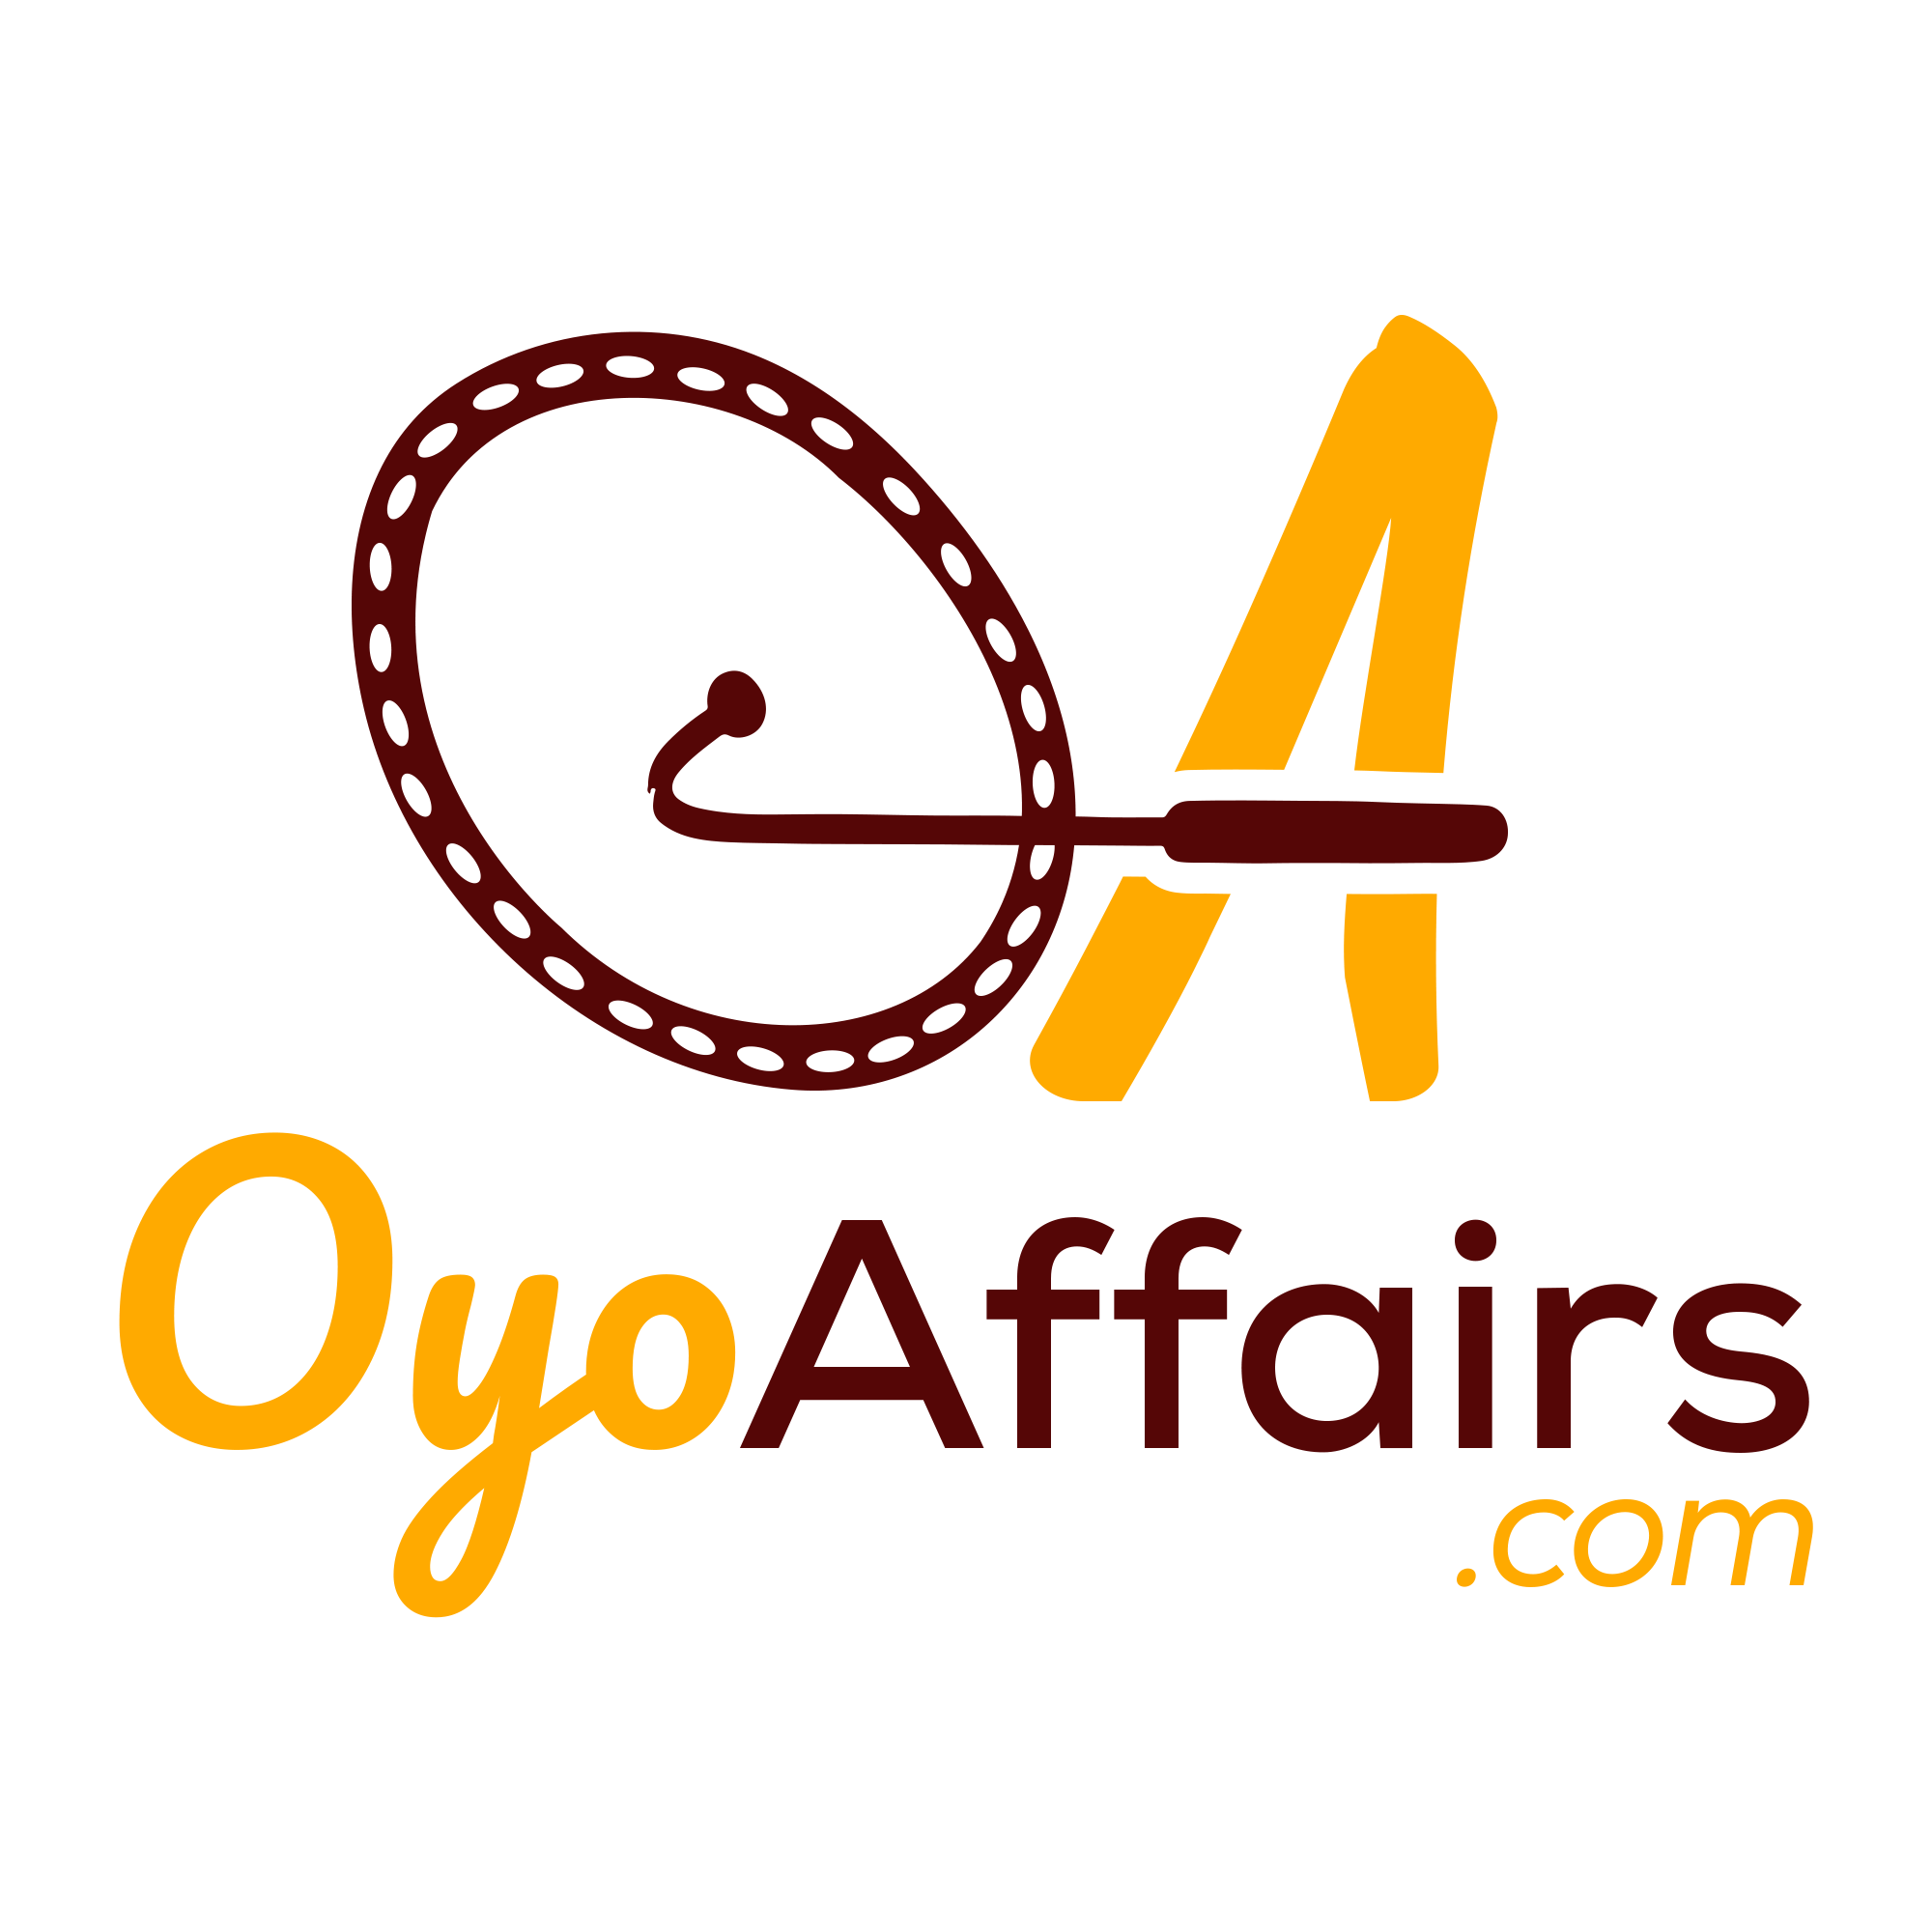 OyoAffairs.net